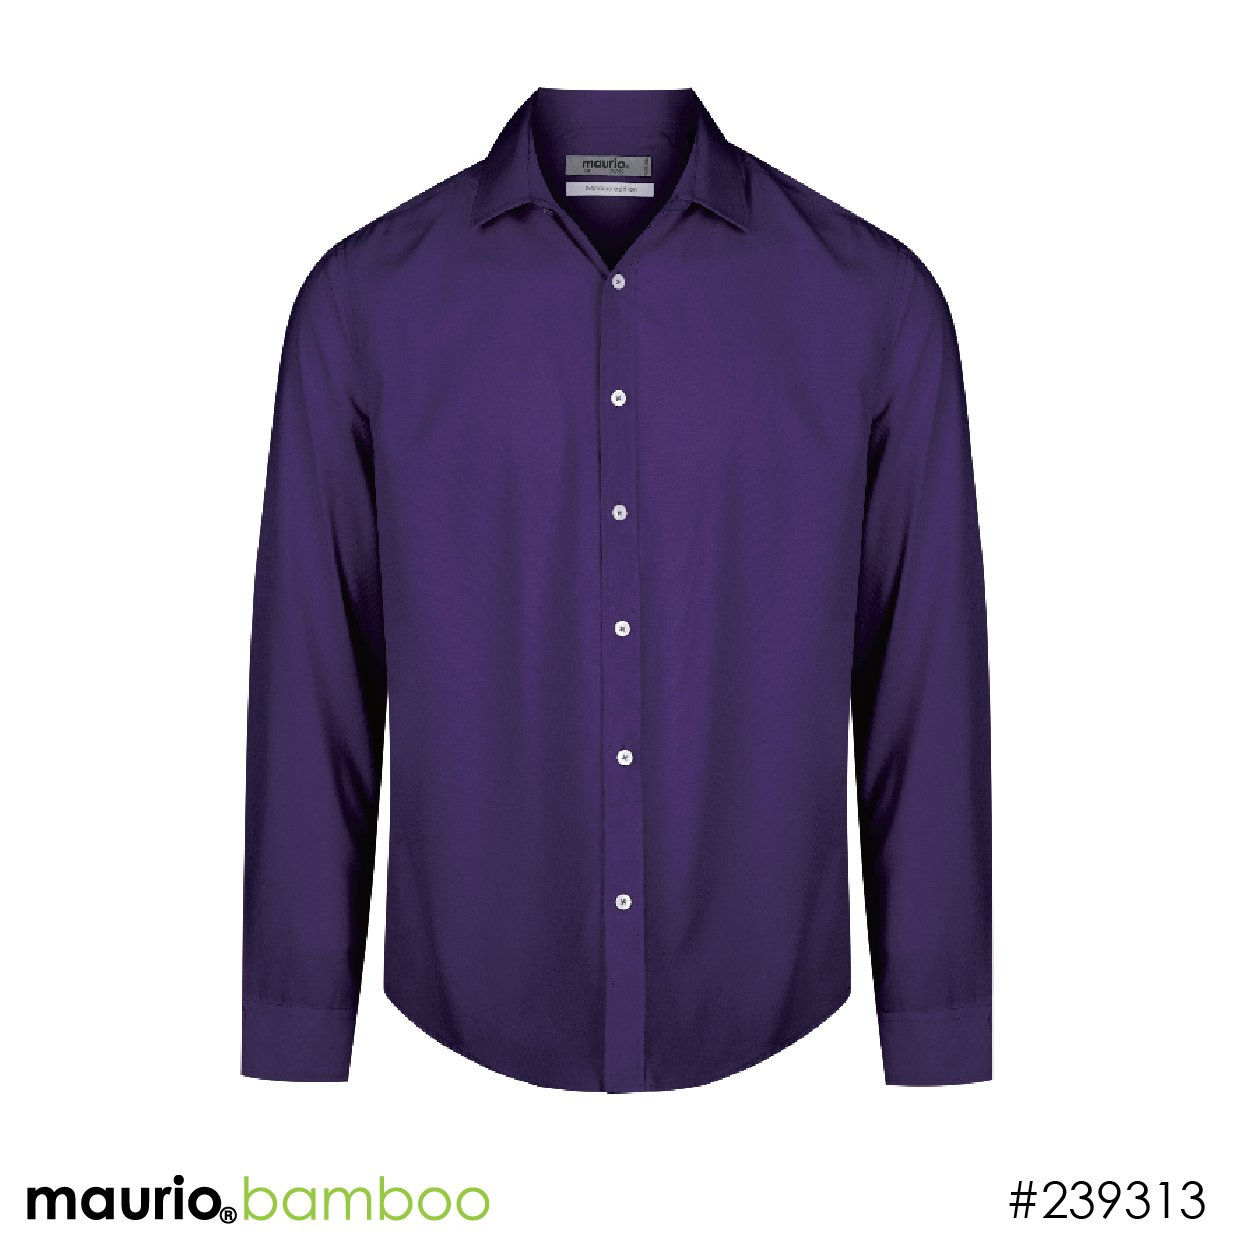 Dress shirt bamboo fabric - plum